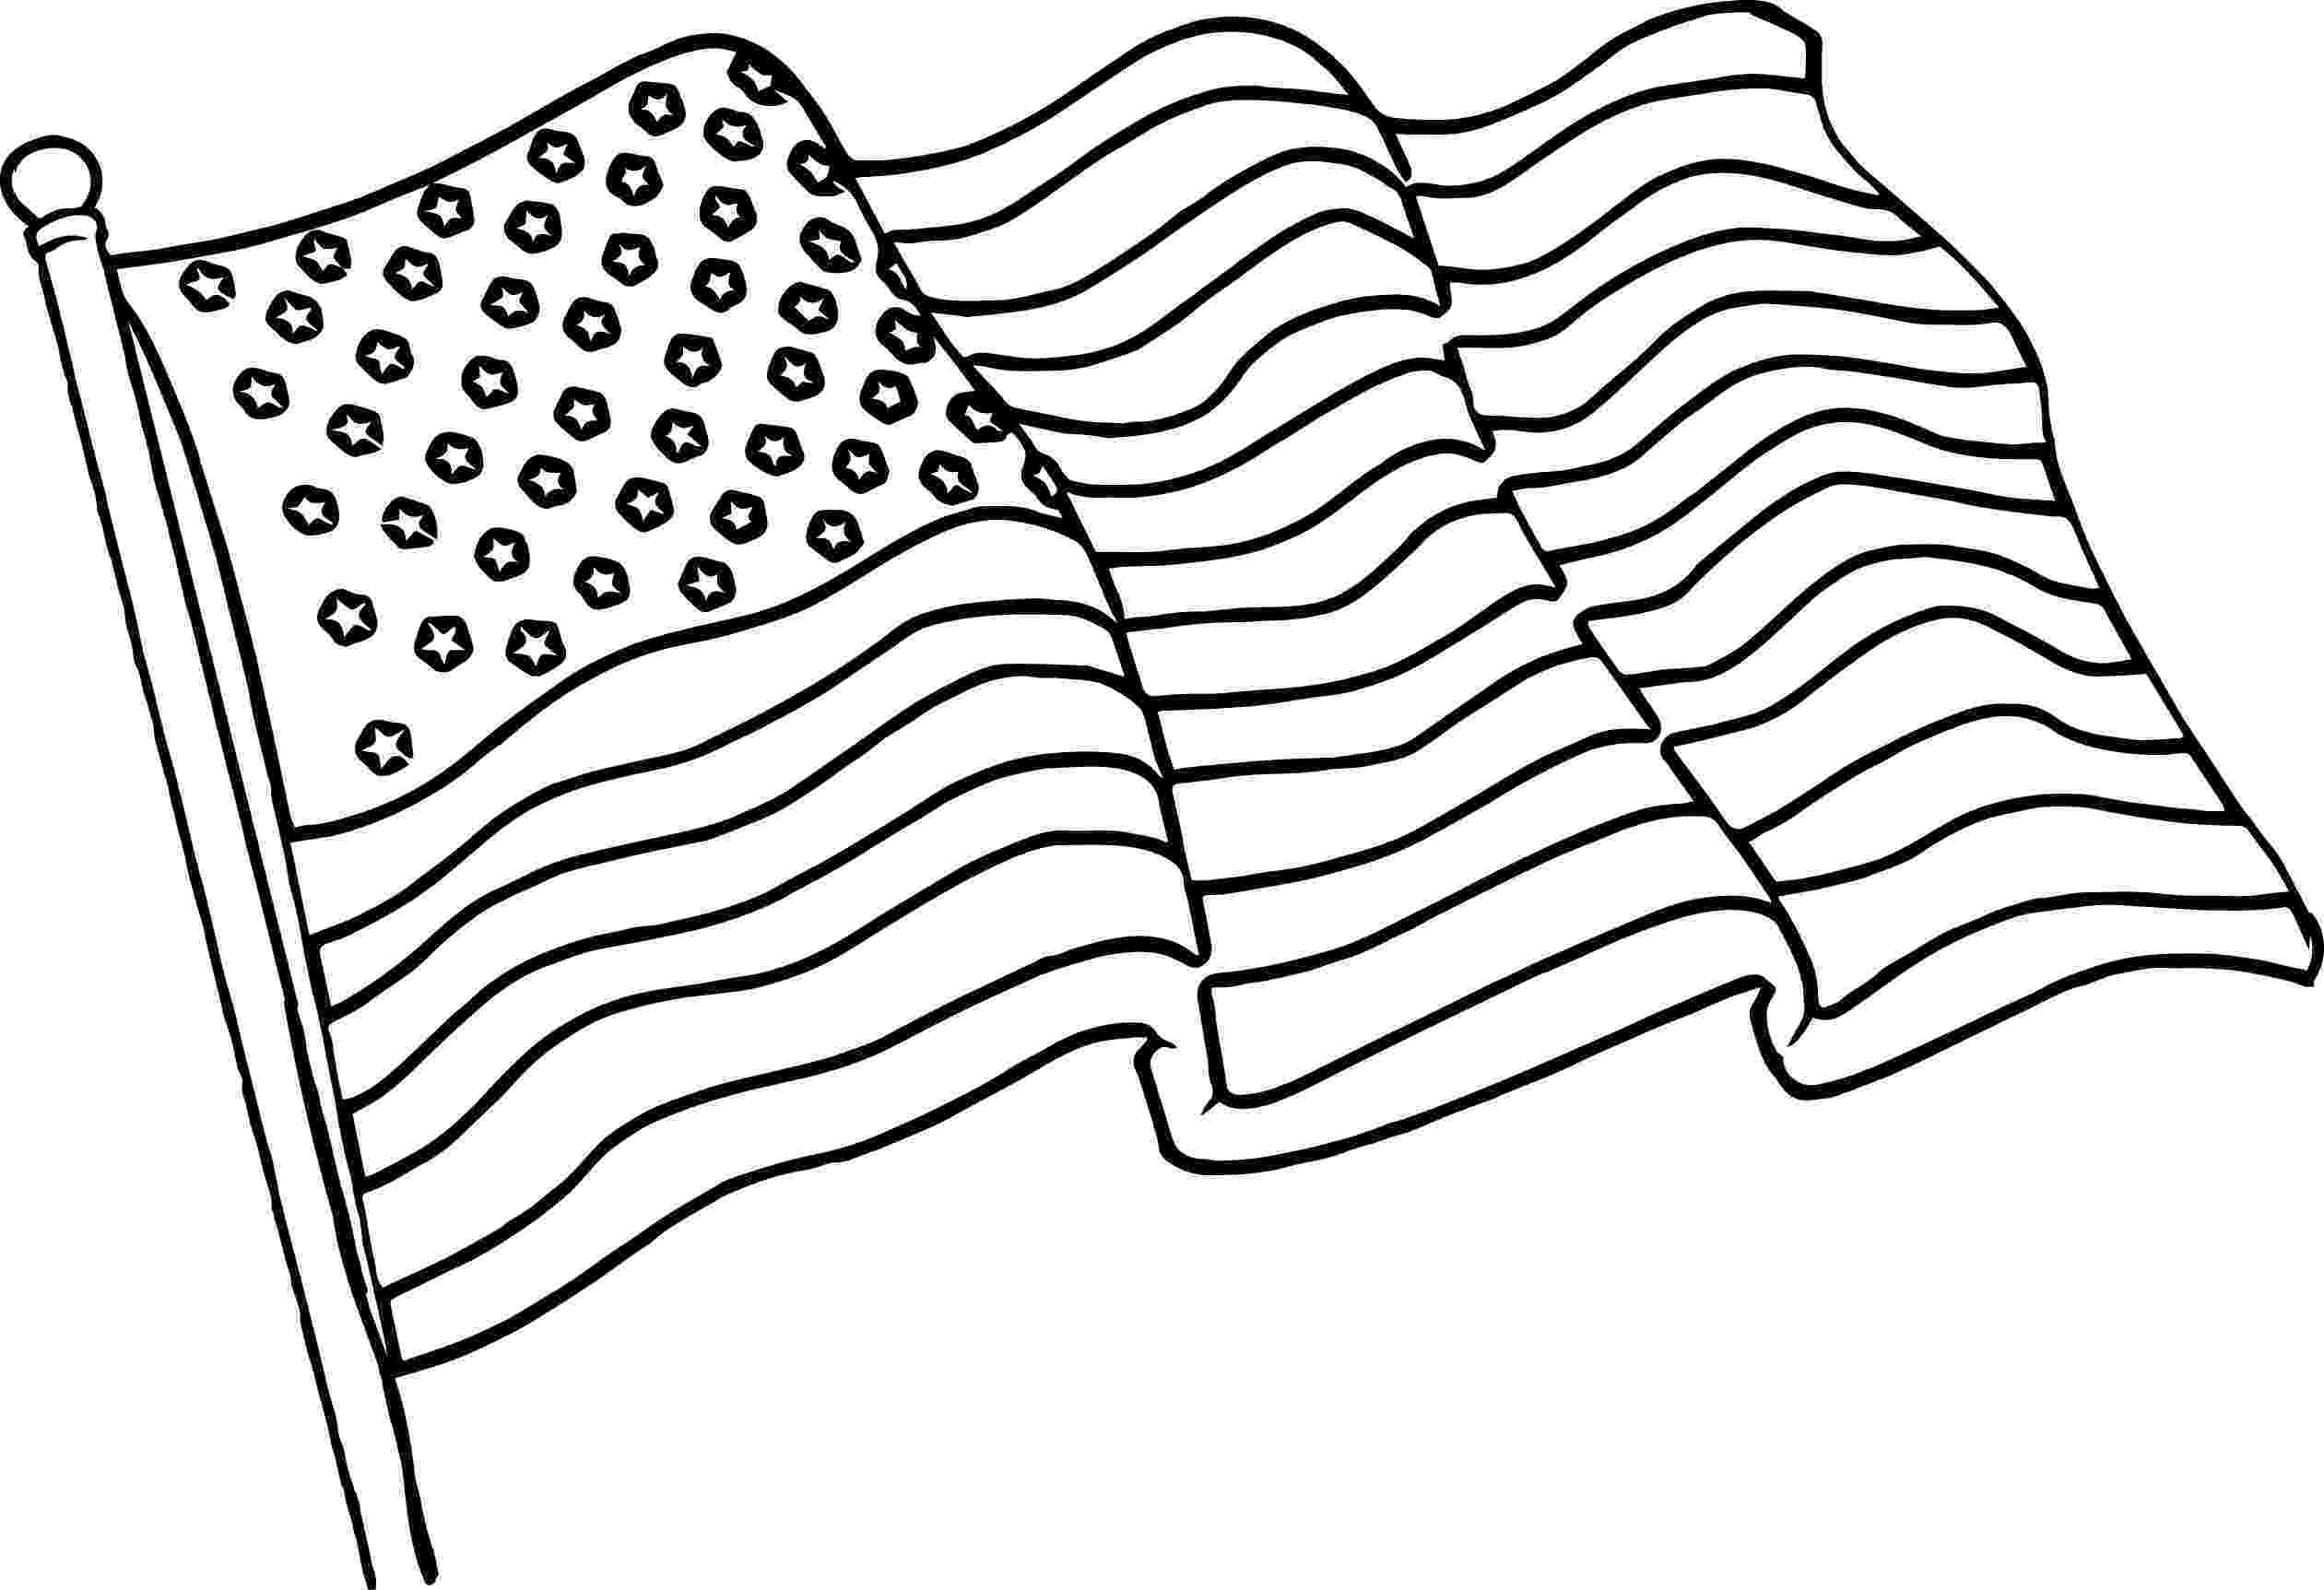 flags coloring pages american flag coloring pages best coloring pages for kids pages flags coloring